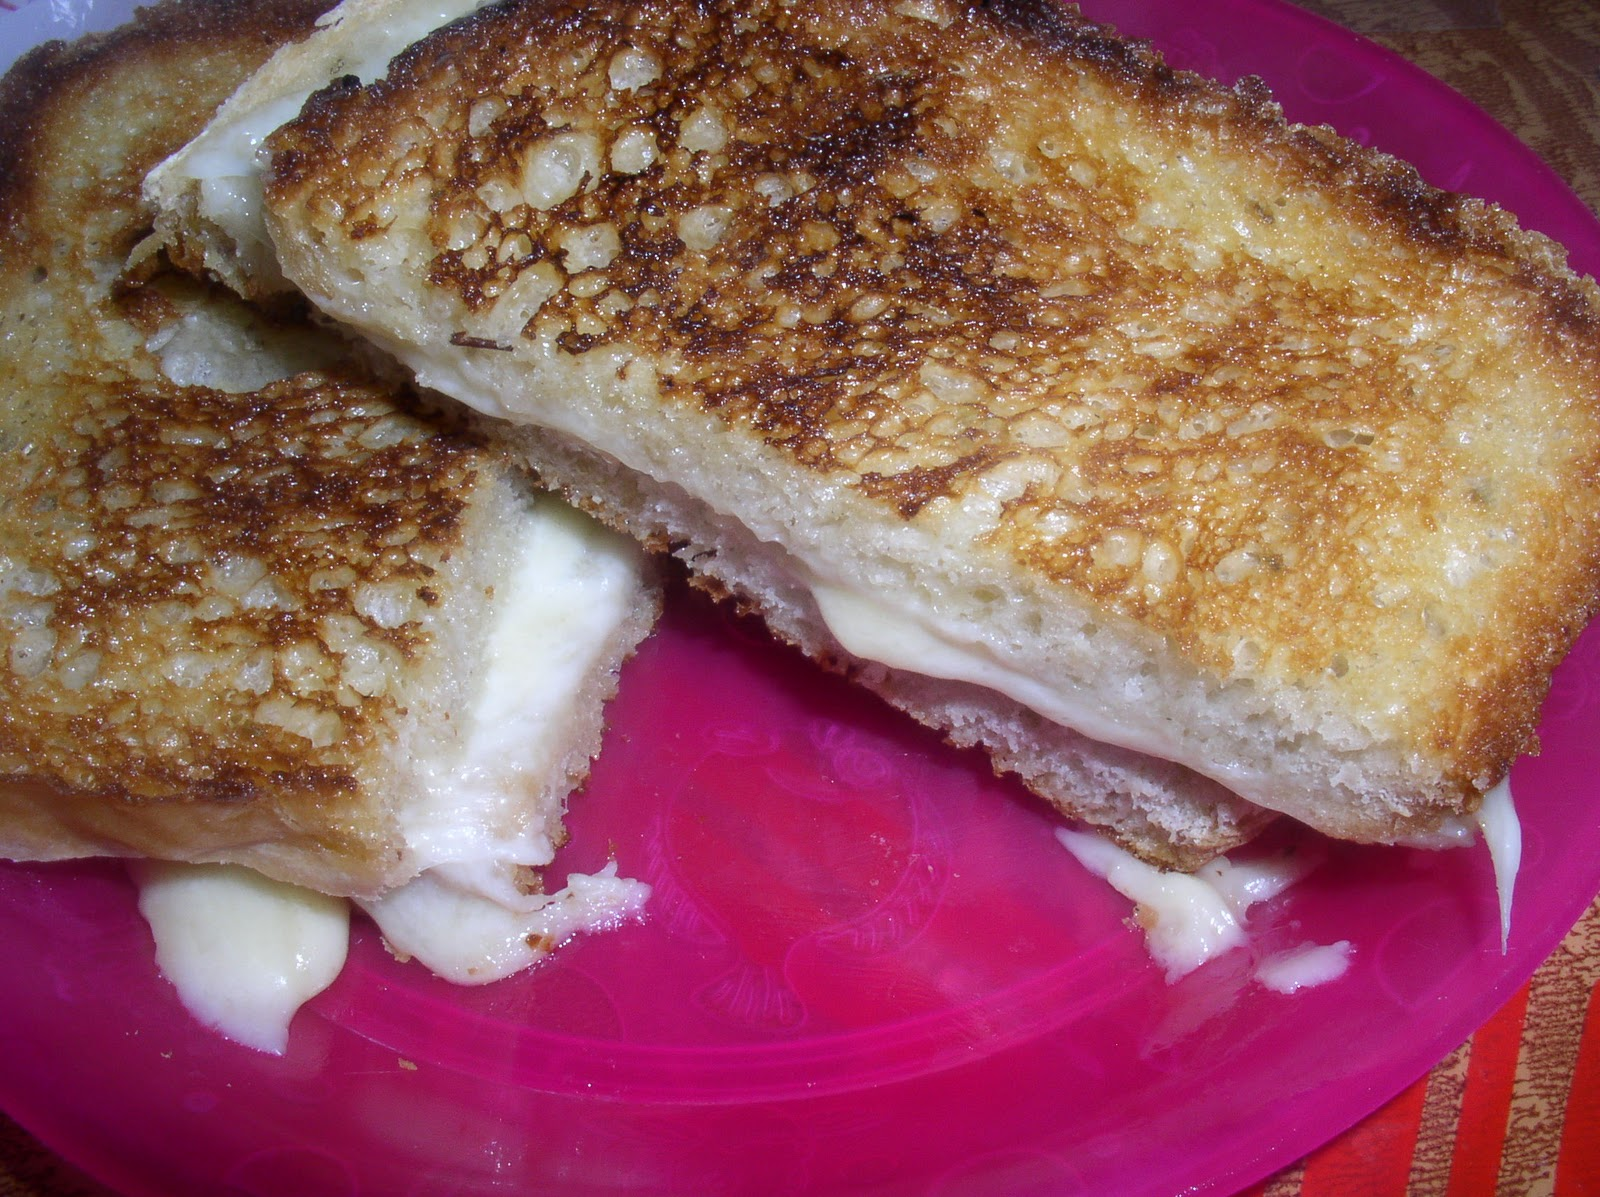 Grilled Cheese - Home-made Bread, White American, Mild Provolone